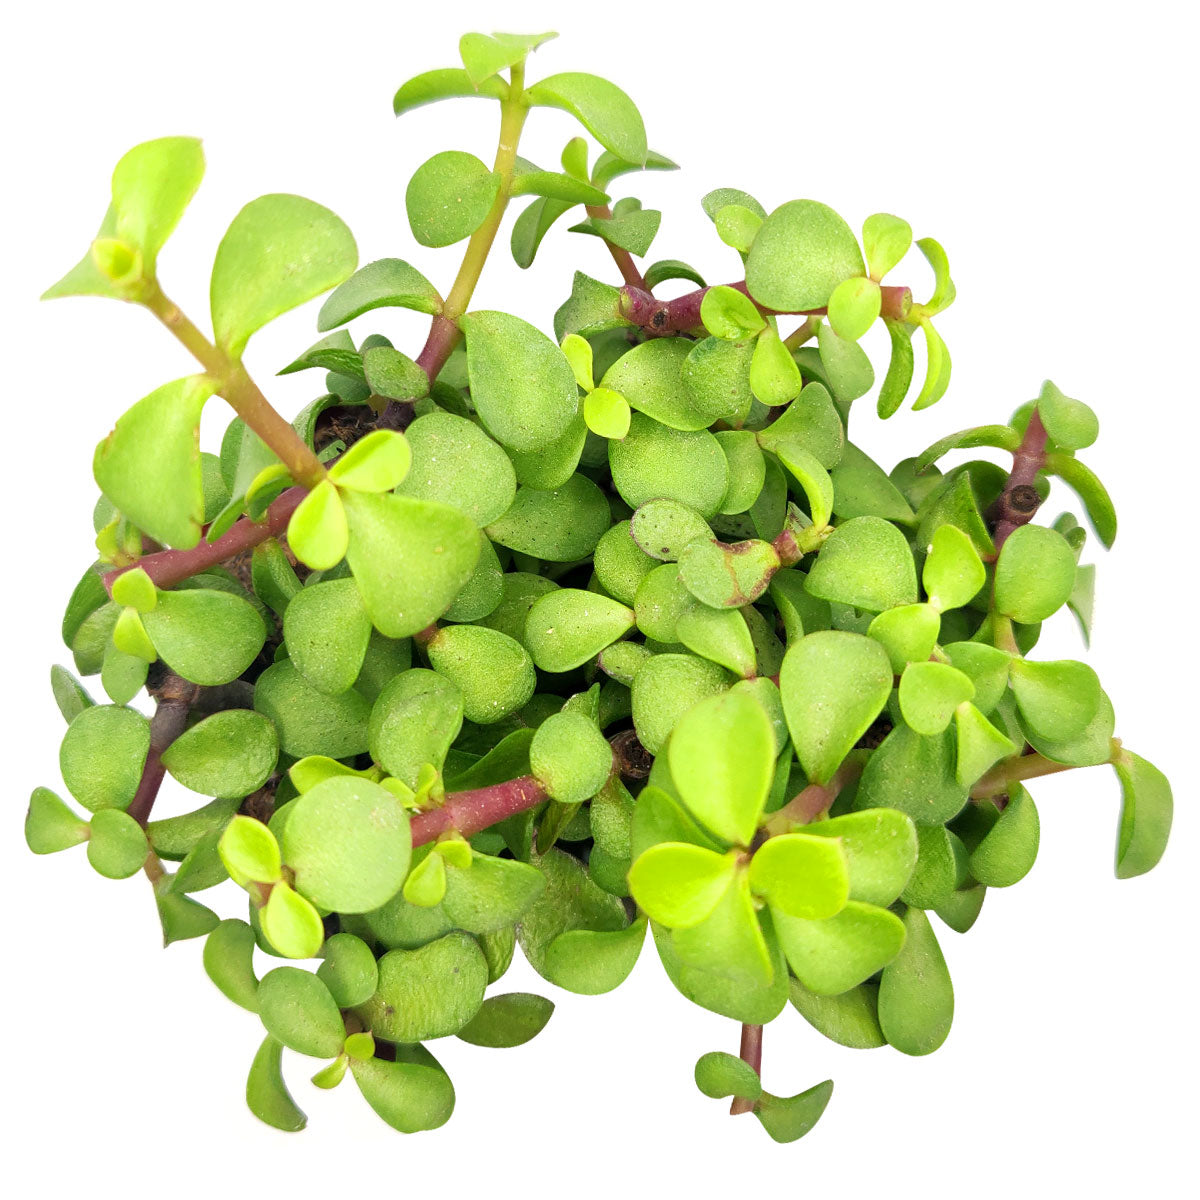 Portulacaria afra Decumbent Succulent for sale, How to care for Portulacaria afra Decumbent Plant, Elephant Bush Succulent  dwarf jade plant